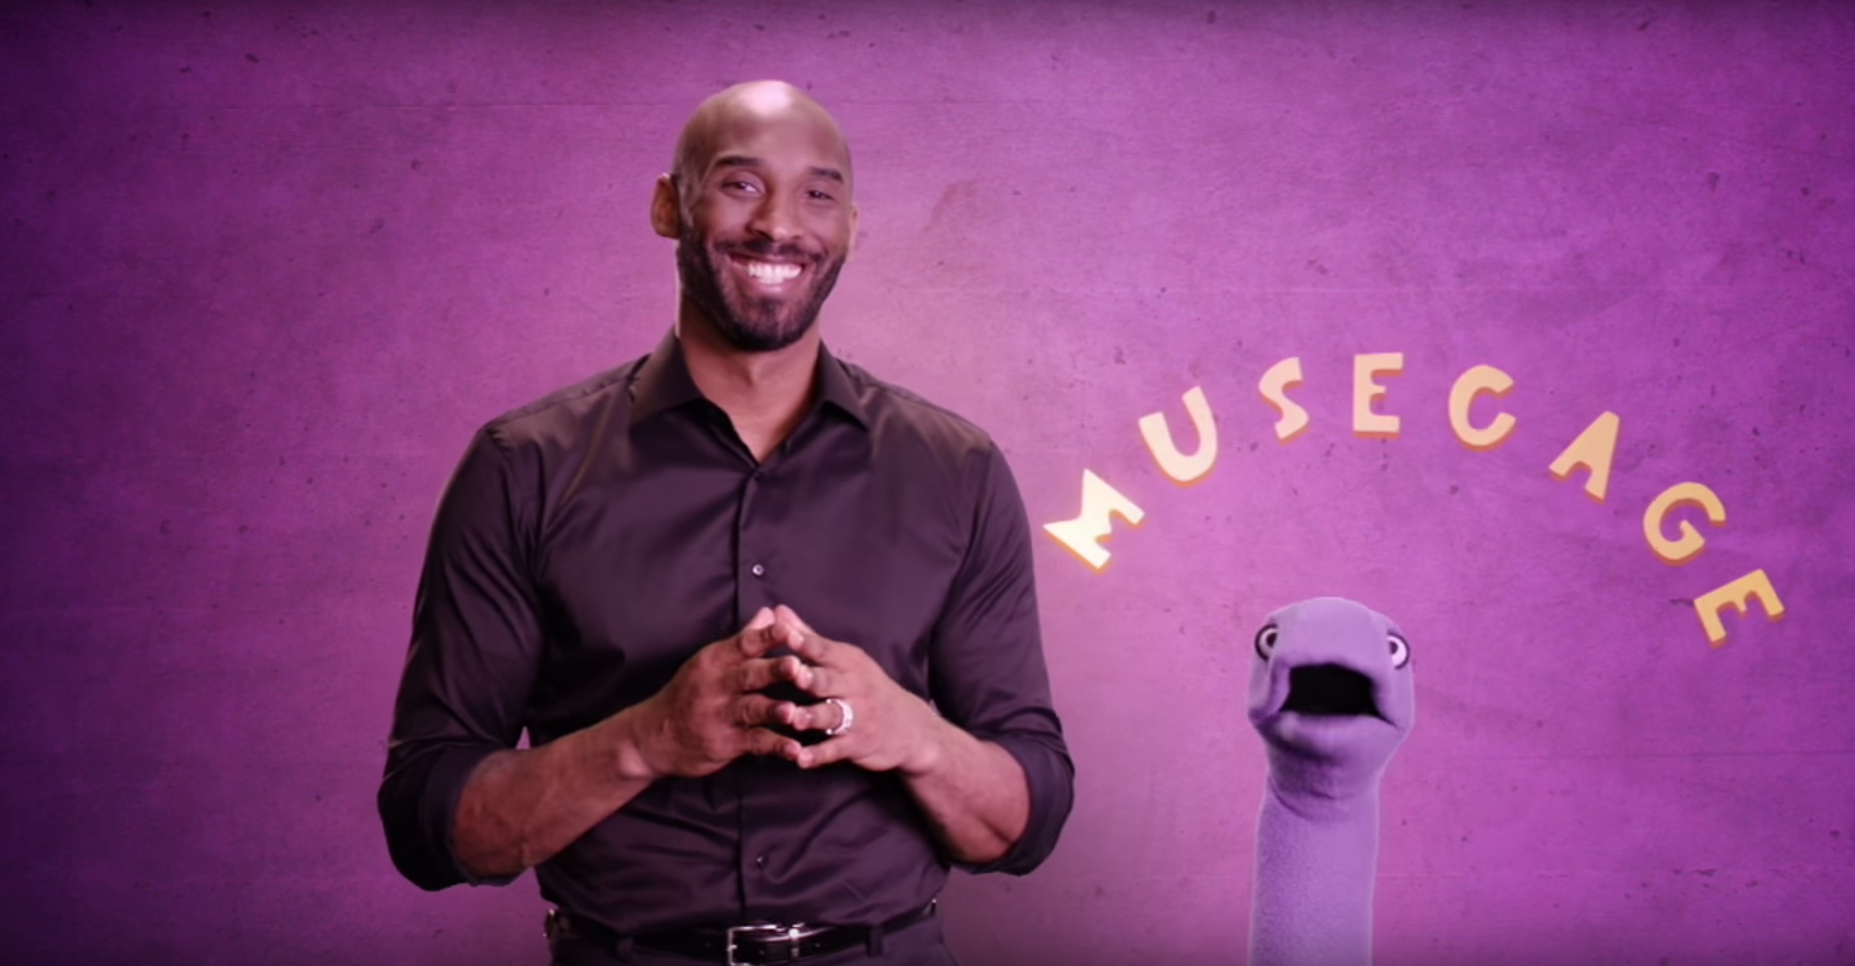 Kobe Bryant's Musecage Is the Most Unique View of the Mamba Mentality We Have Left